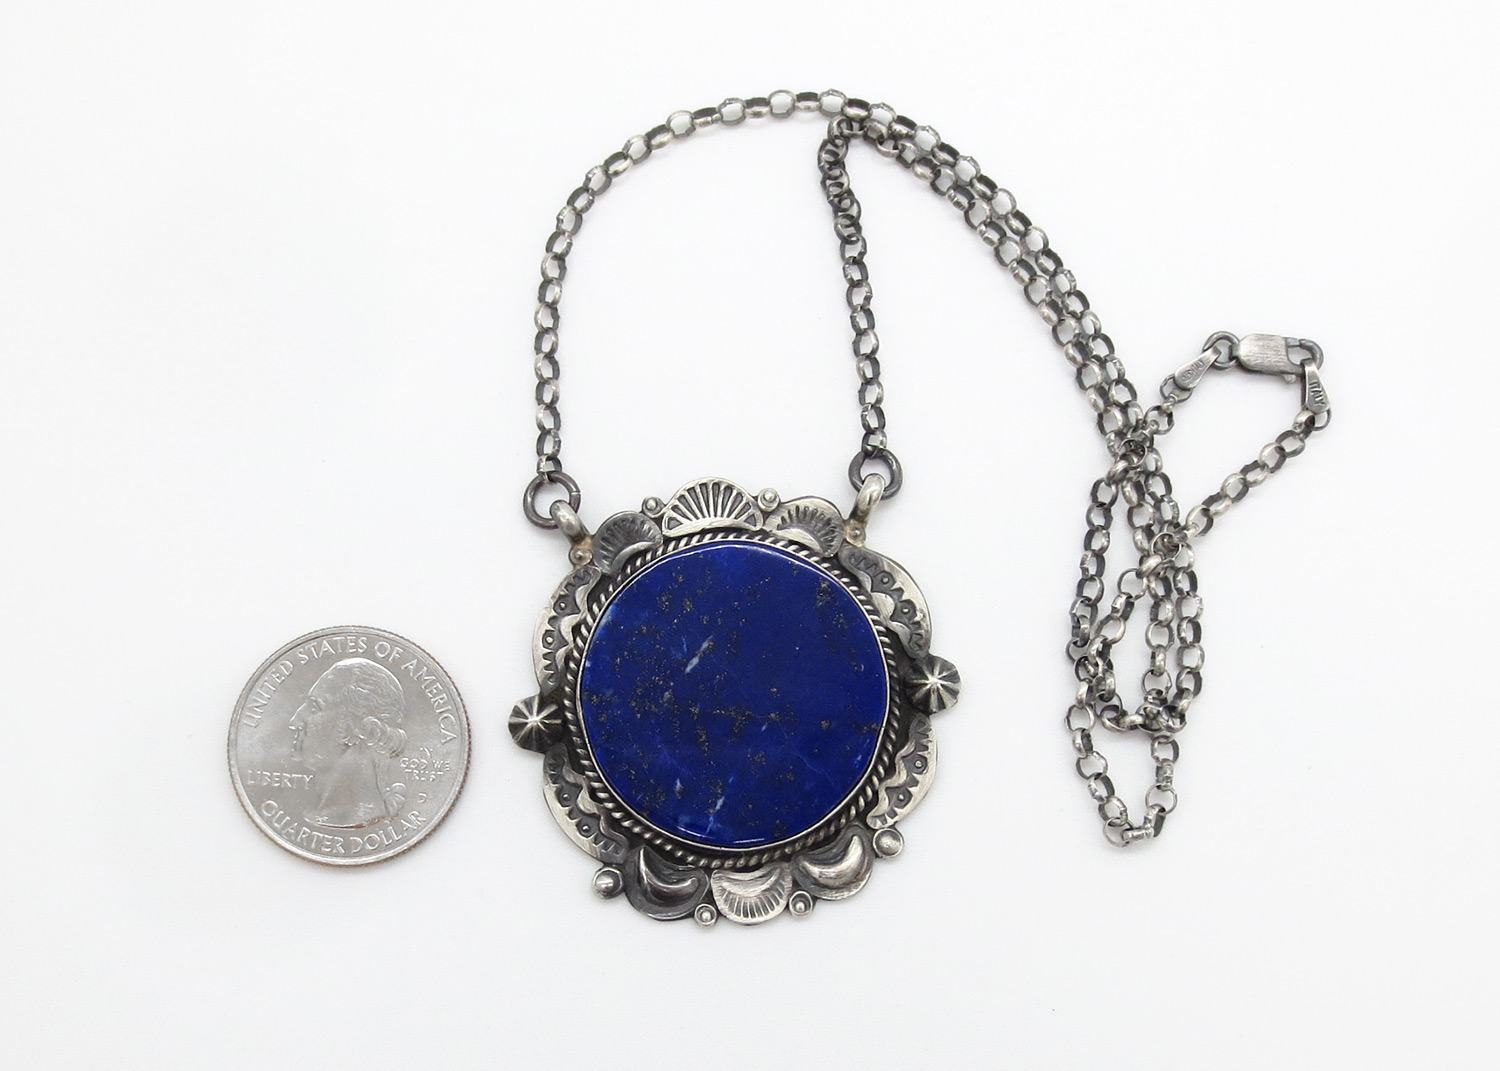 Image 1 of   Lapis & Sterling Silver Pendant Necklace Native American Jewelry - 3870dt